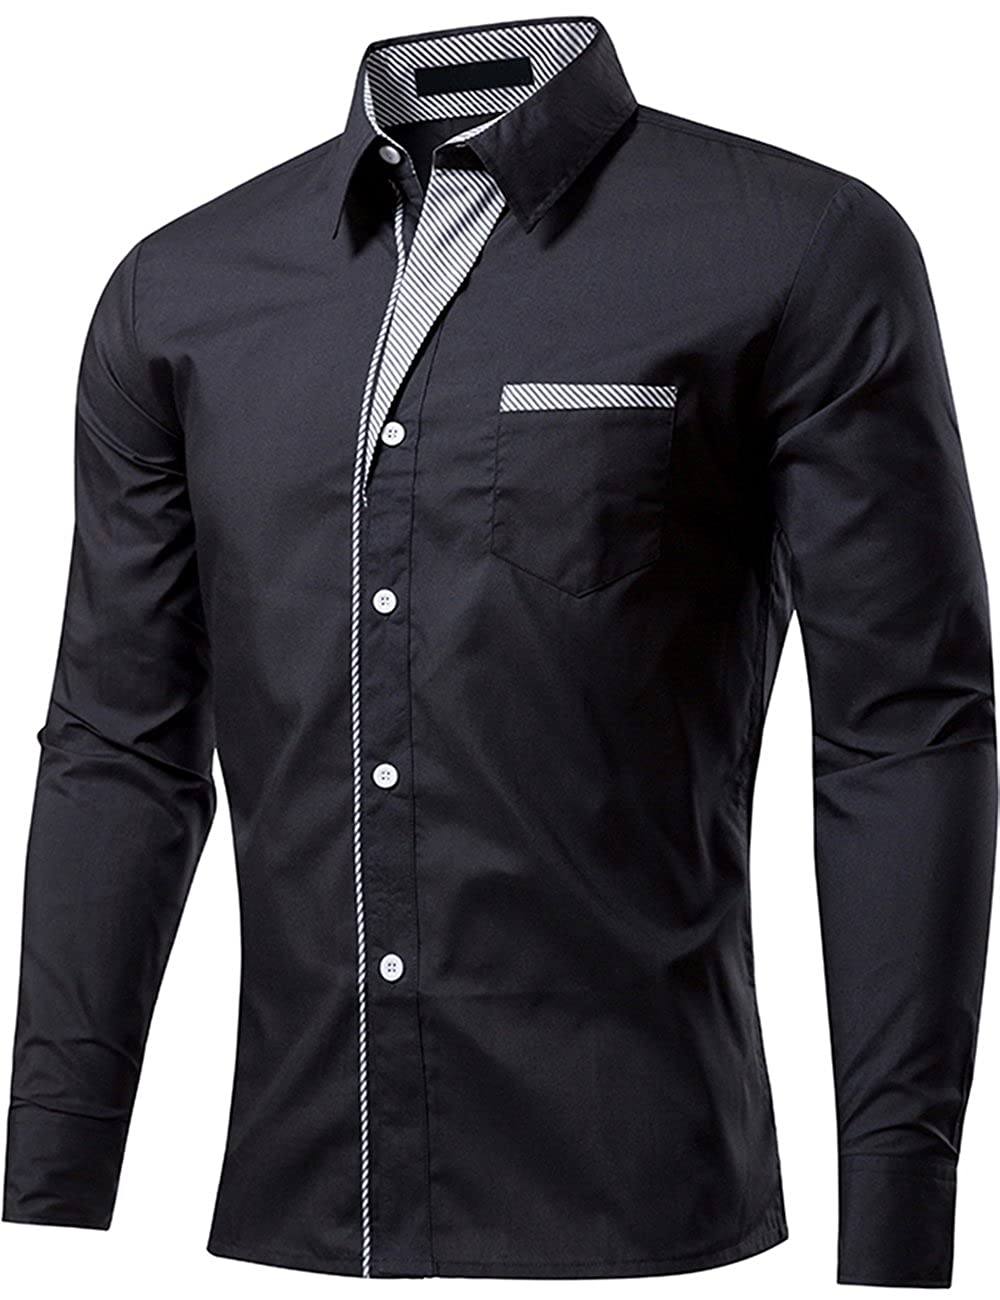 546c131860 STYLE:Mens Summer Fashion Long Sleeve Fitted Dress Tops Shirts(Striped-Trim  Contrast) FEATURE:This Stylish Men's Collared Dress Shirt Comes in a Modern  Fit ...